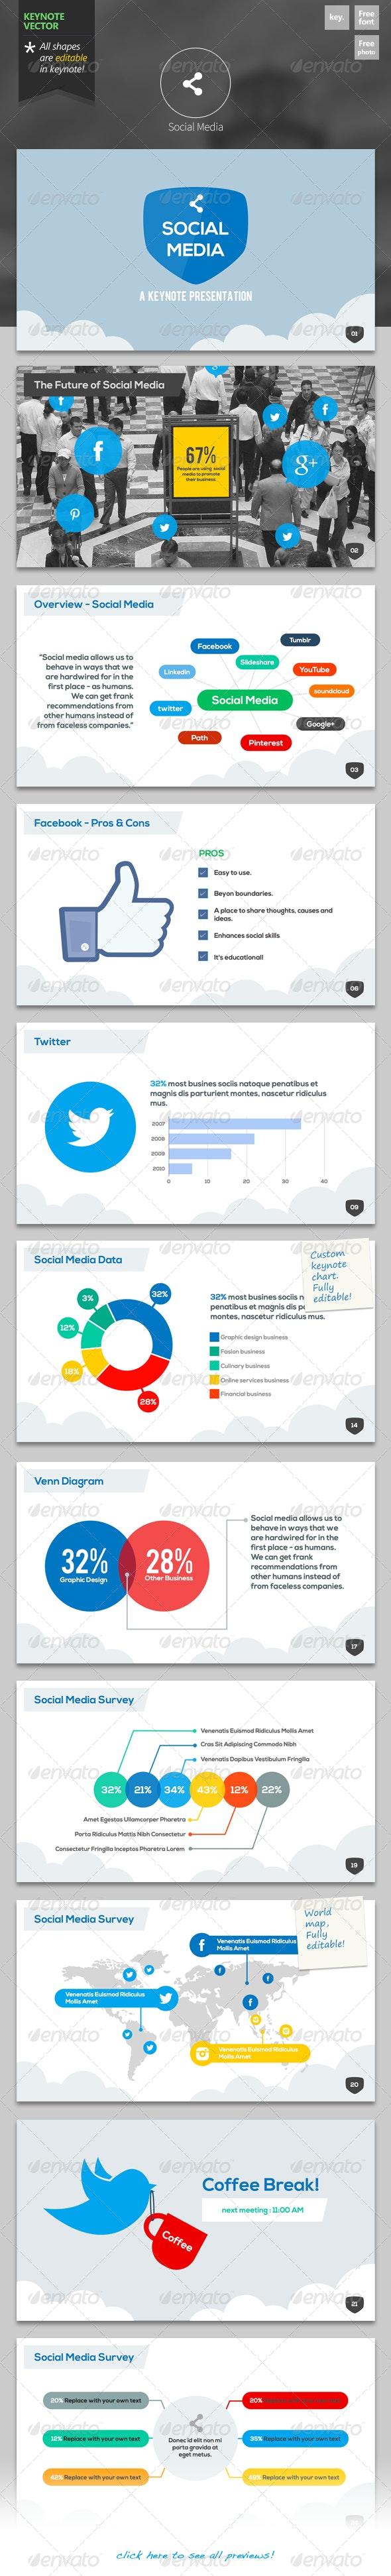 Social Media - Keynote Template - Keynote Templates Presentation Templates